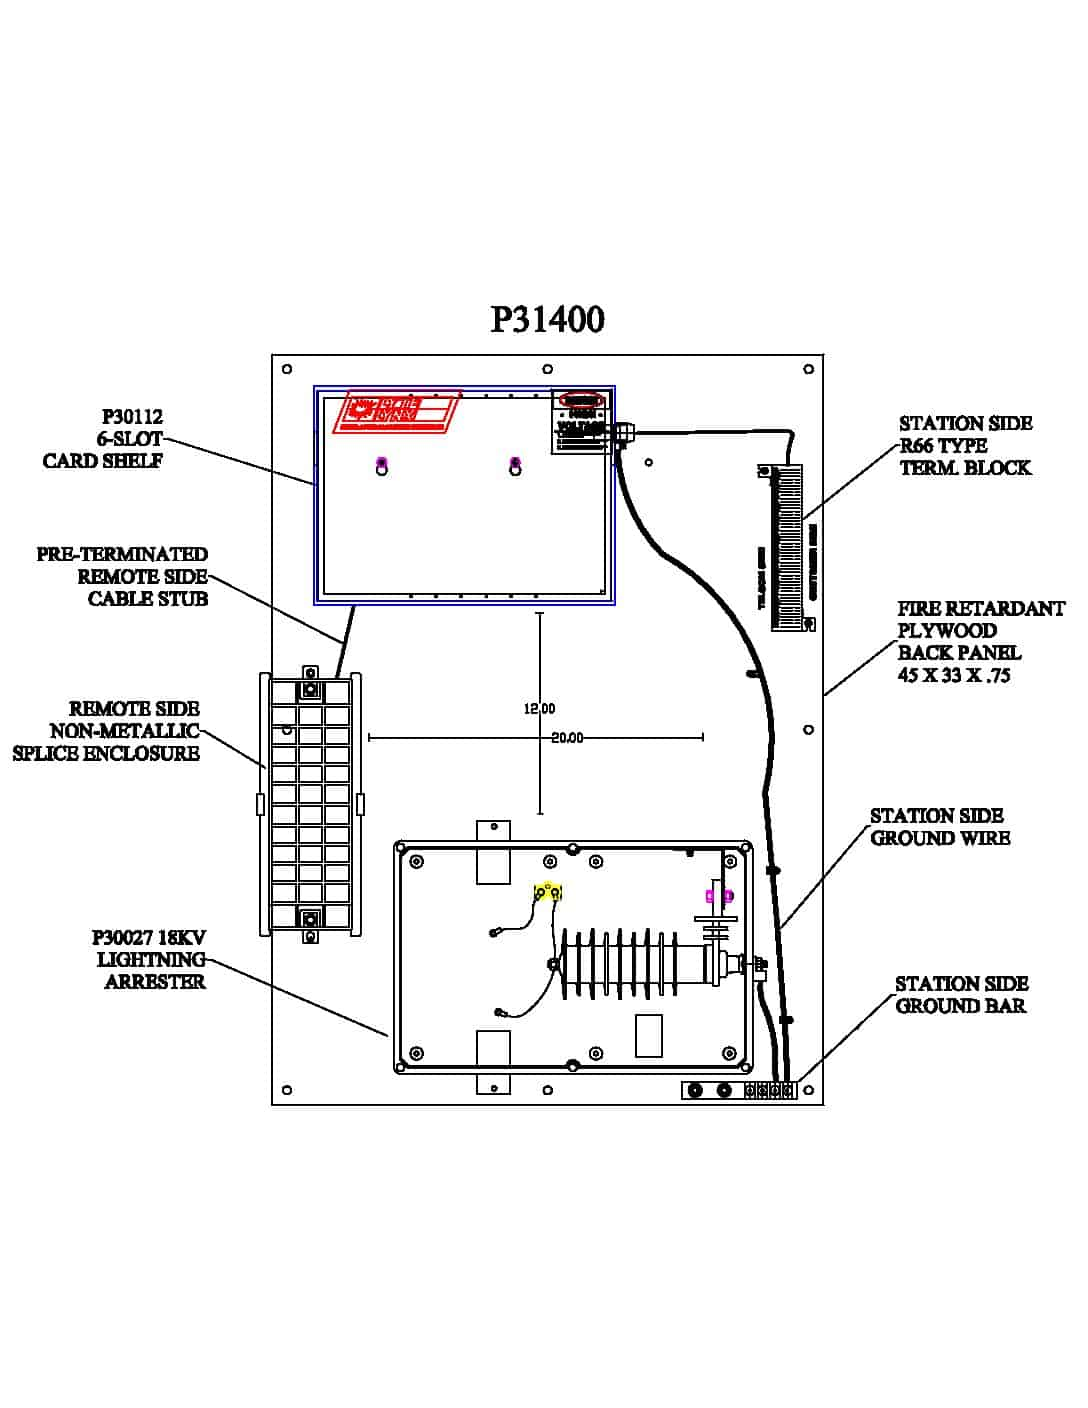 P31400 Turnkey Protection Packages - 6 slot PDF thumbnail